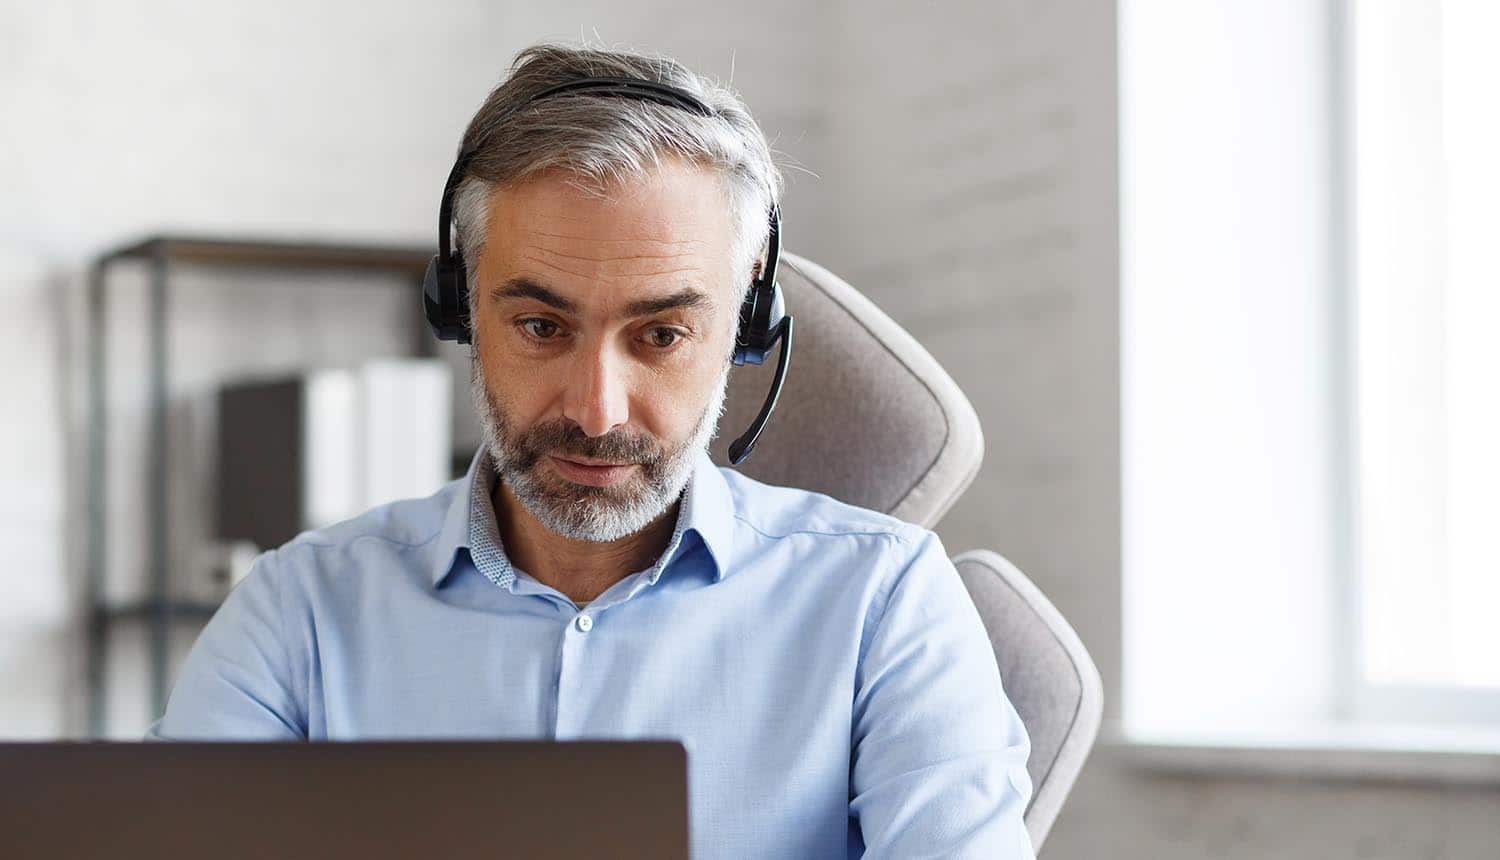 Grey-haired senior man using collaboration communications tools while remote working